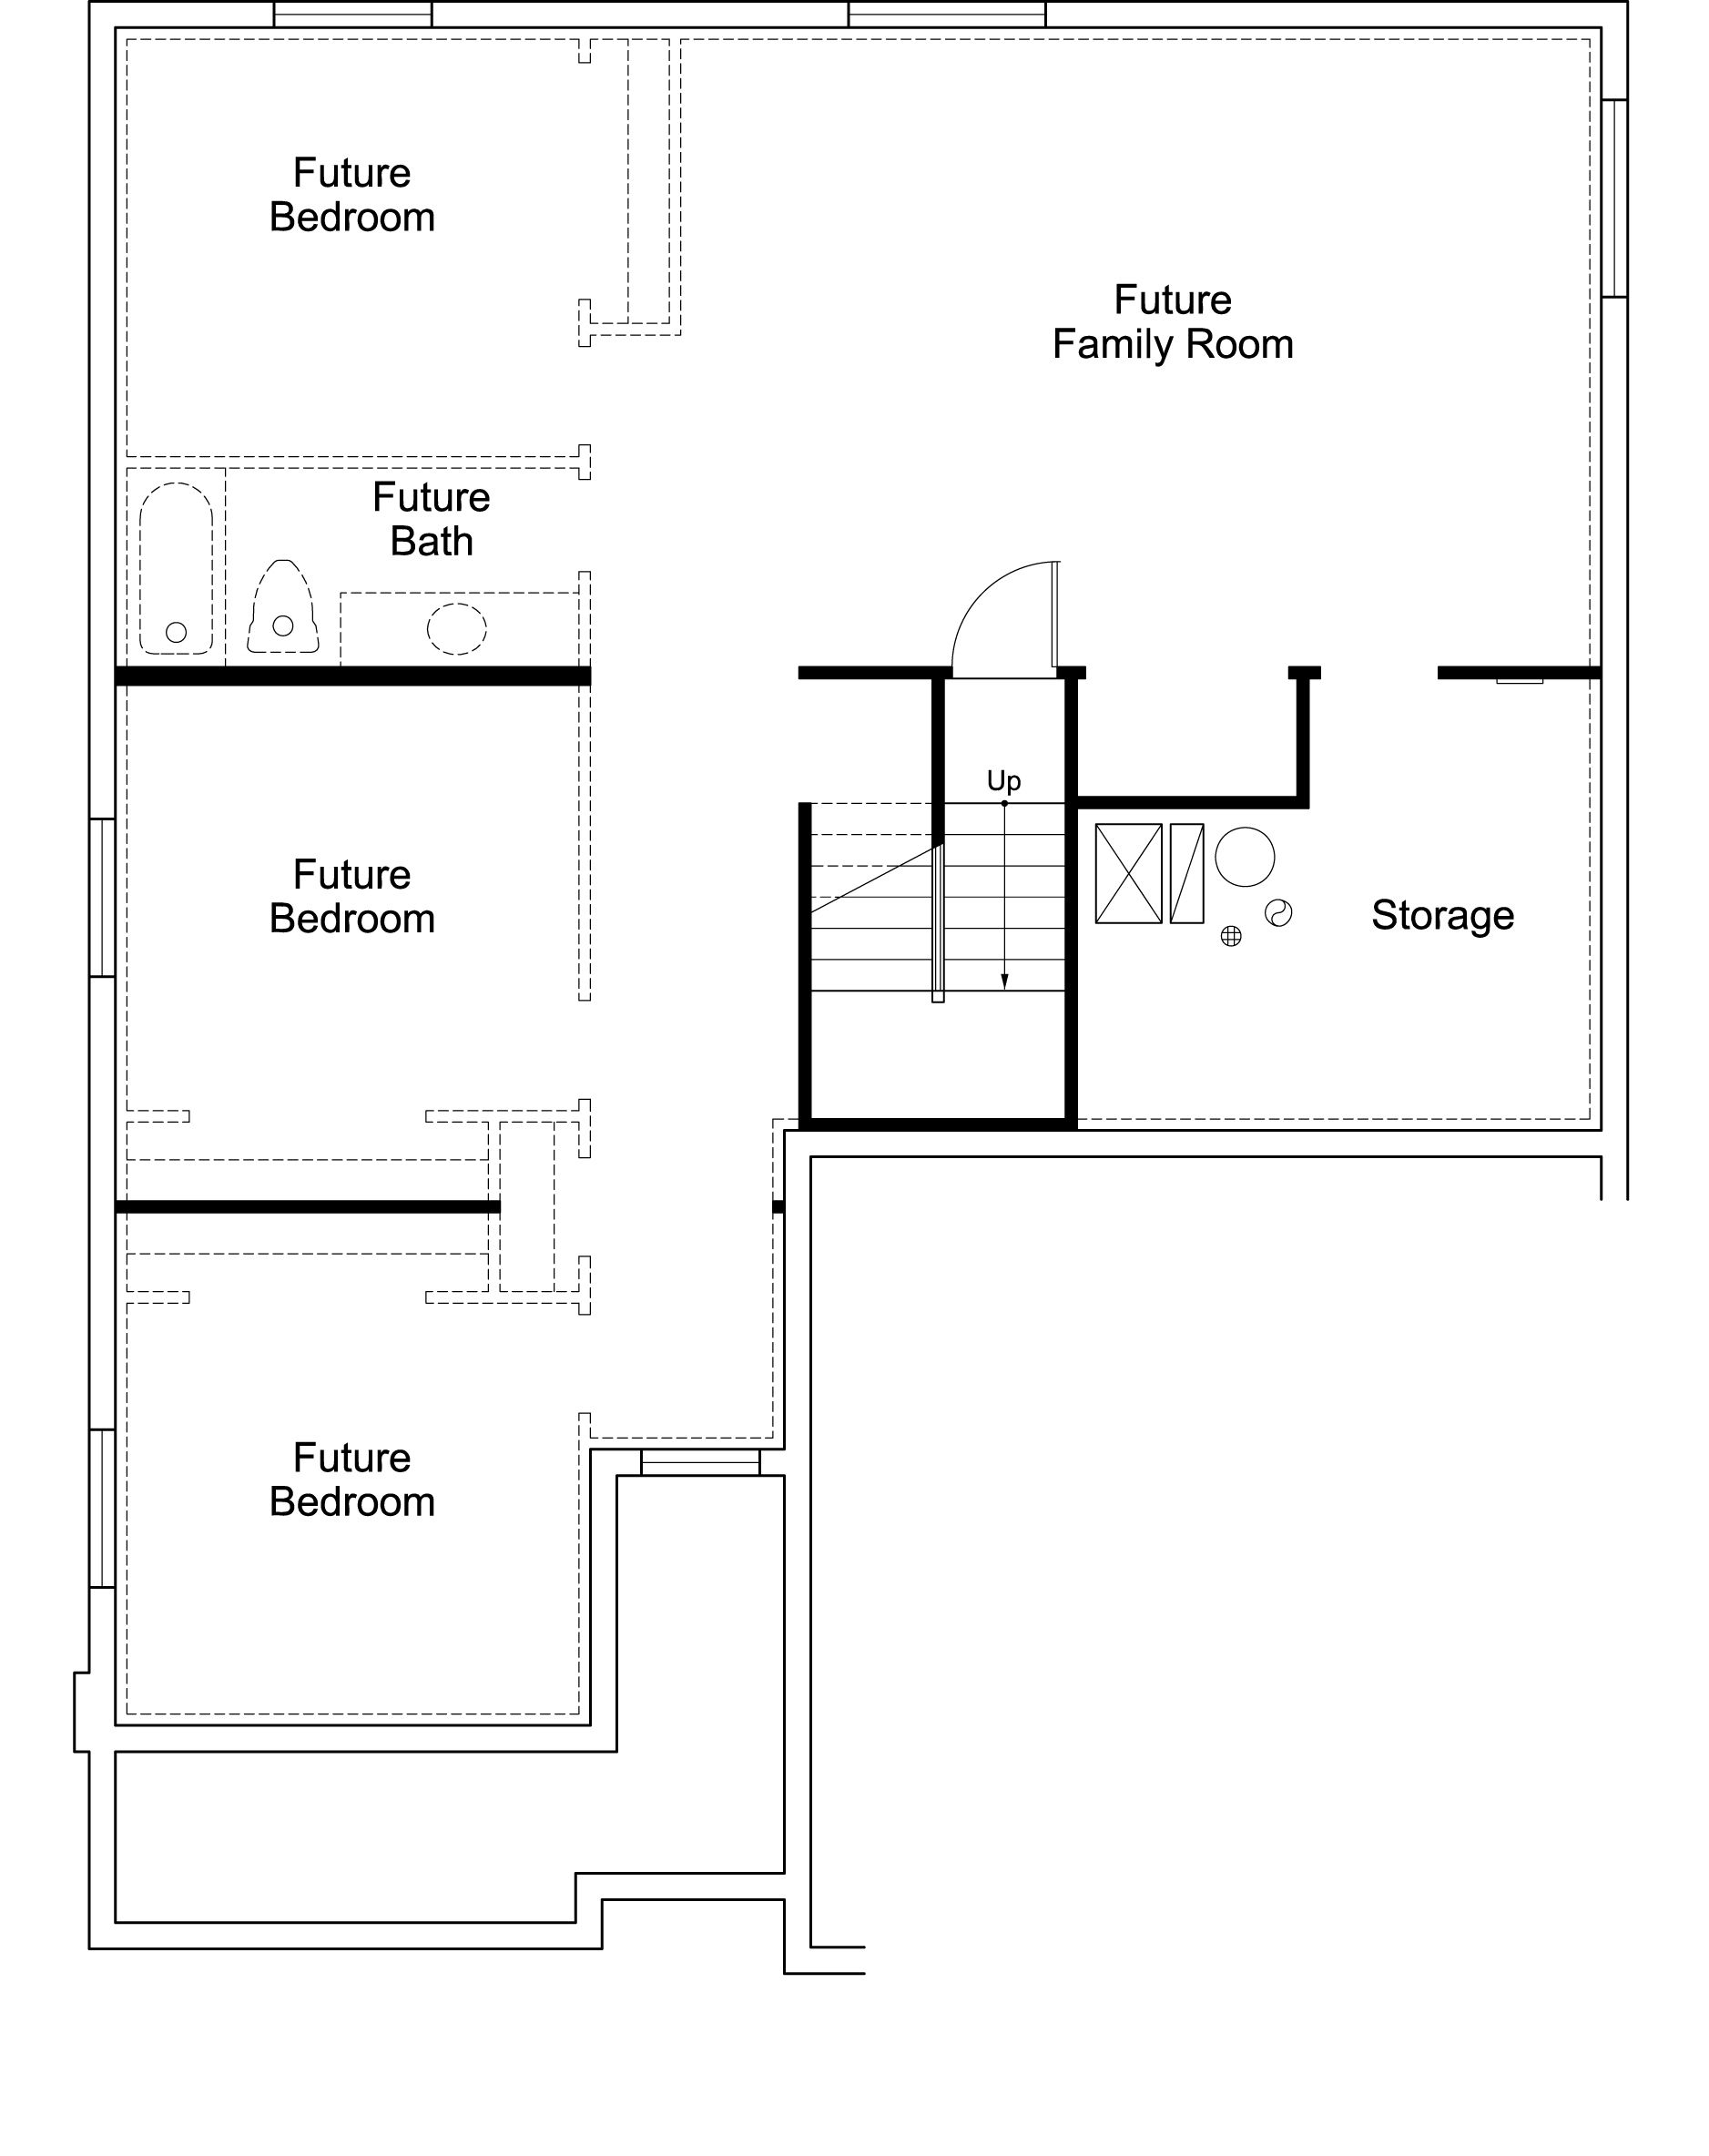 Avignon Home Design For New Homes In Utah Basement Floor Plans Floor Plans Basement Layout